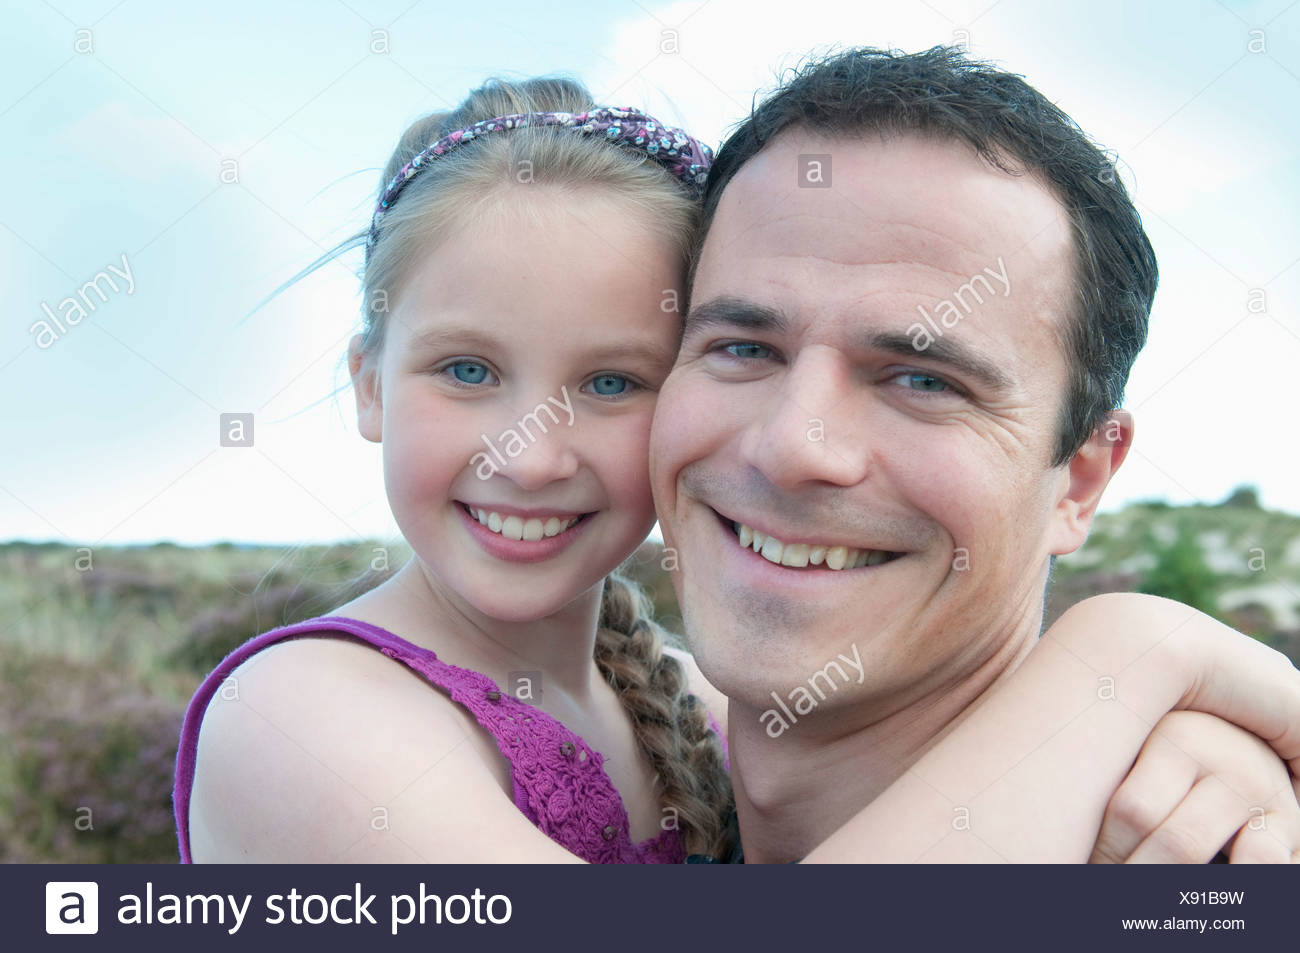 Father and daughter smiling together - Stock Image